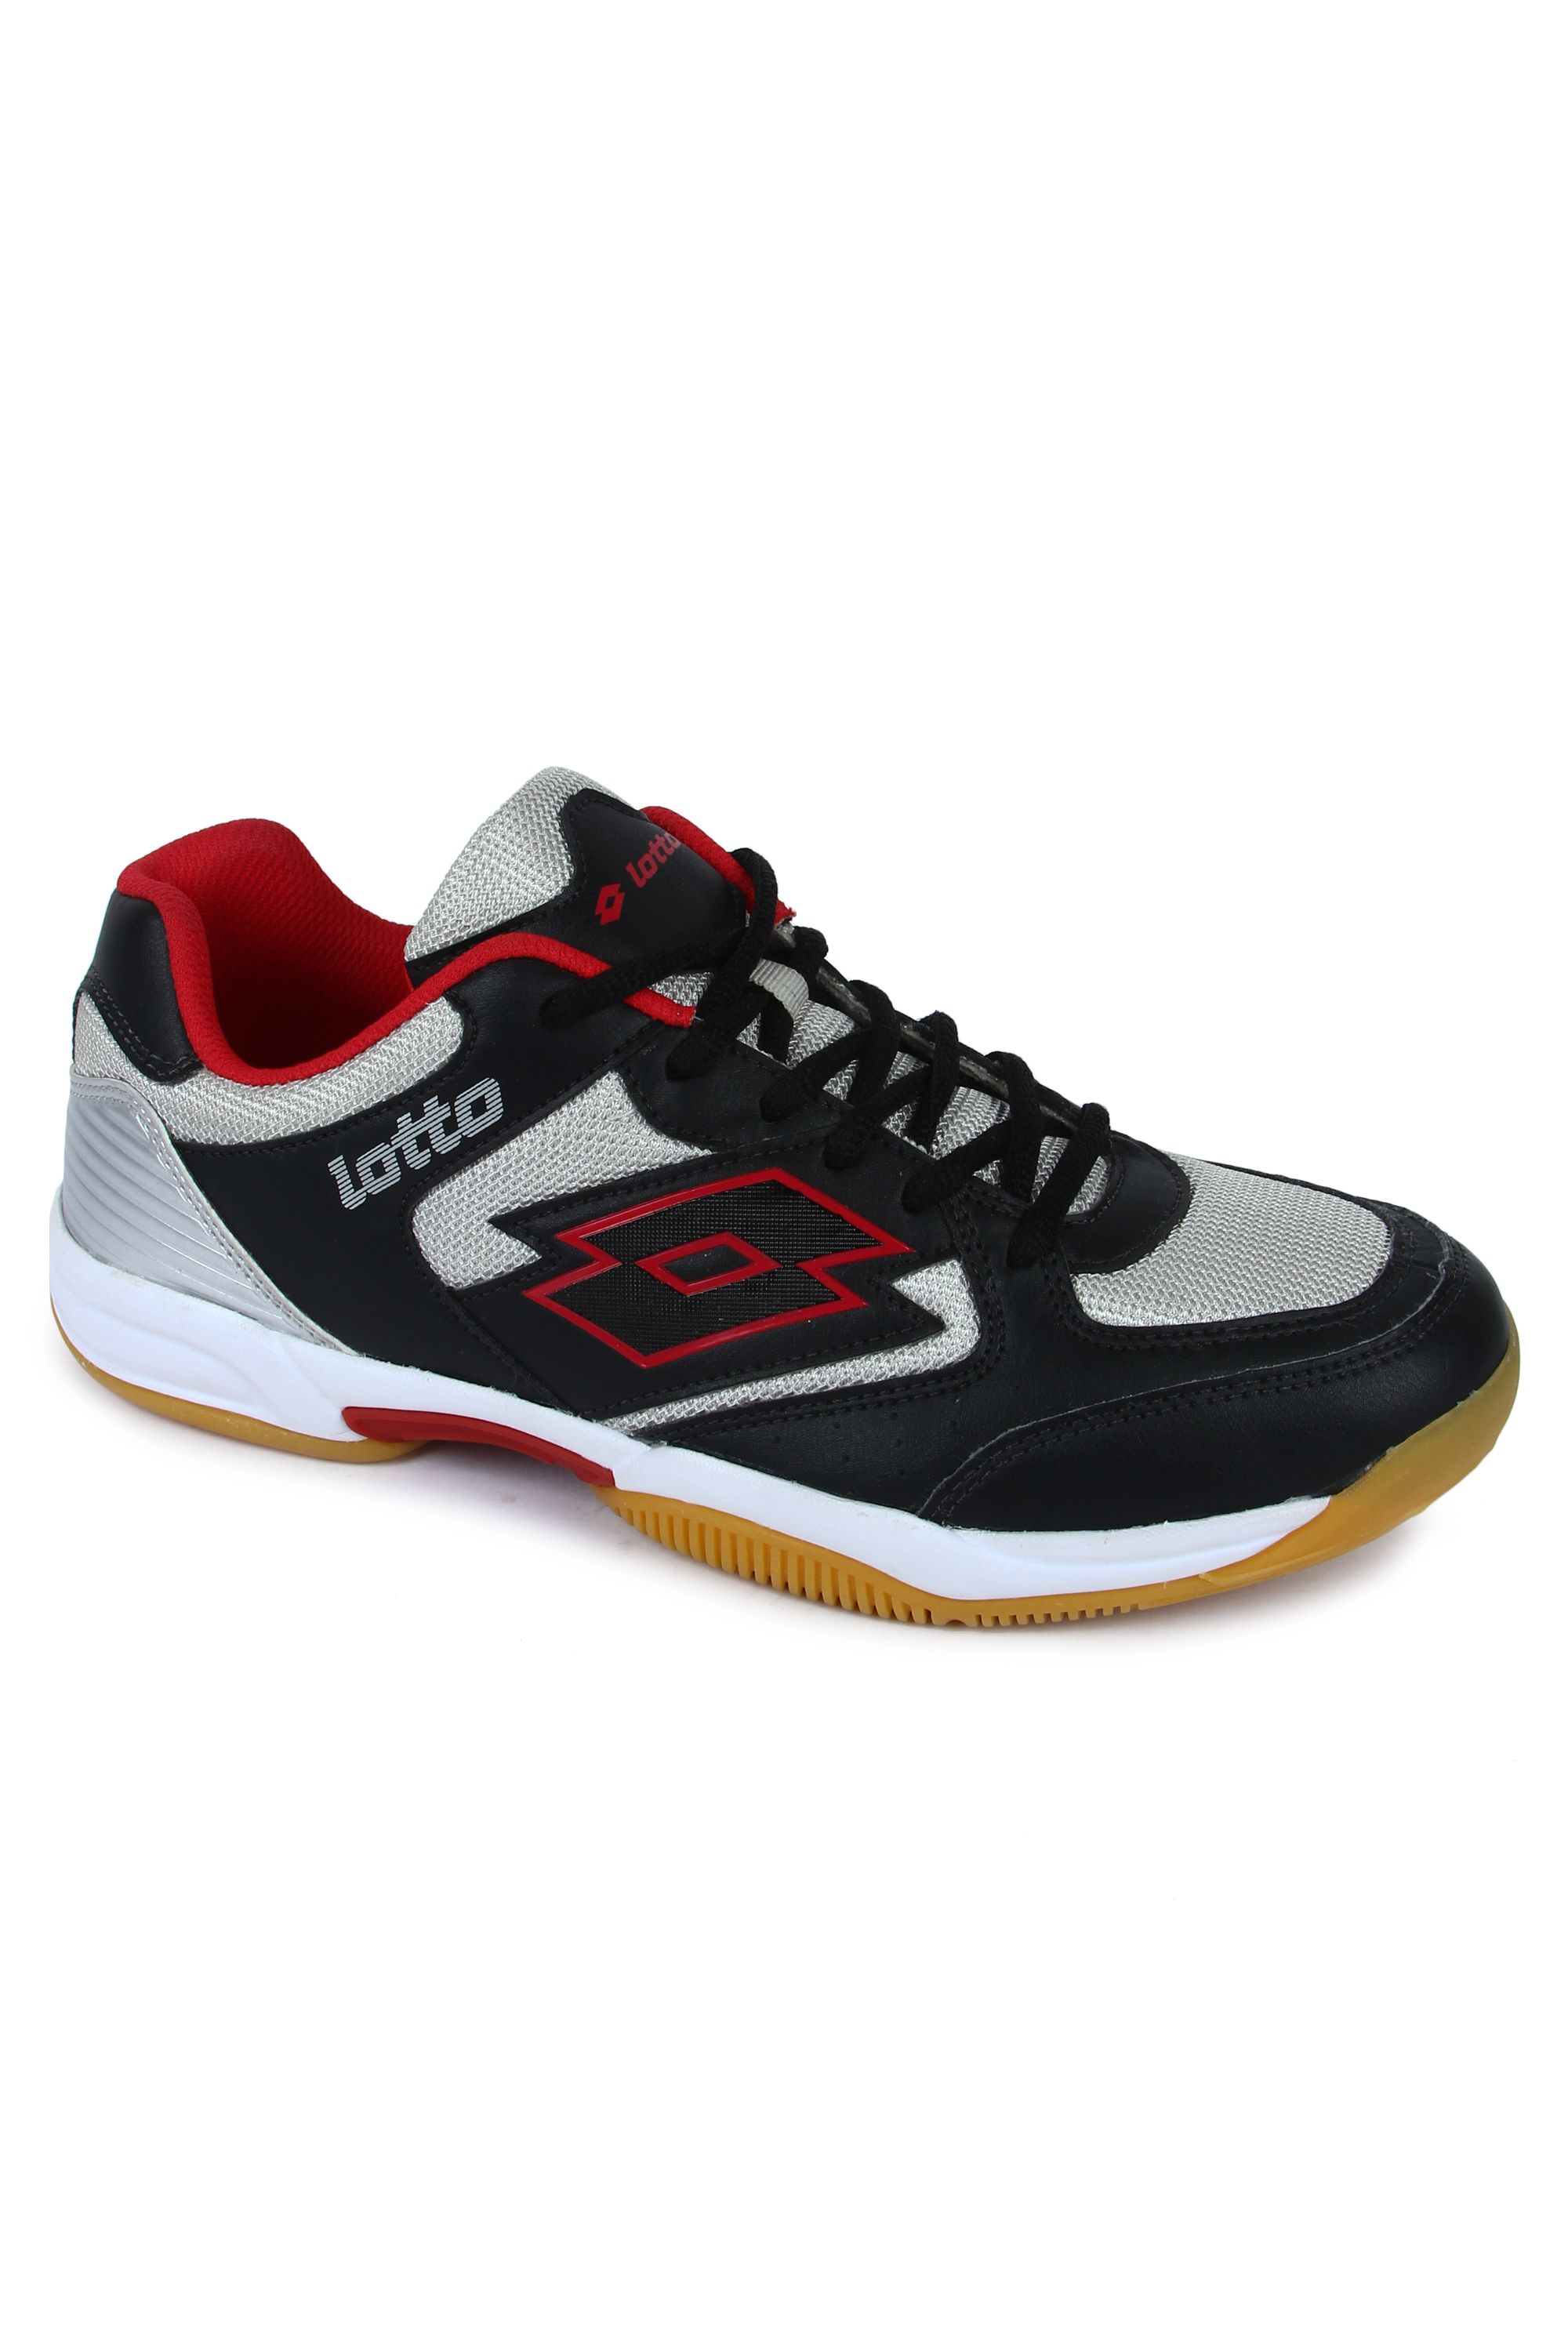 dc06fdef7773 GUM color Rubber out sole is specially molded for non-marking on surface